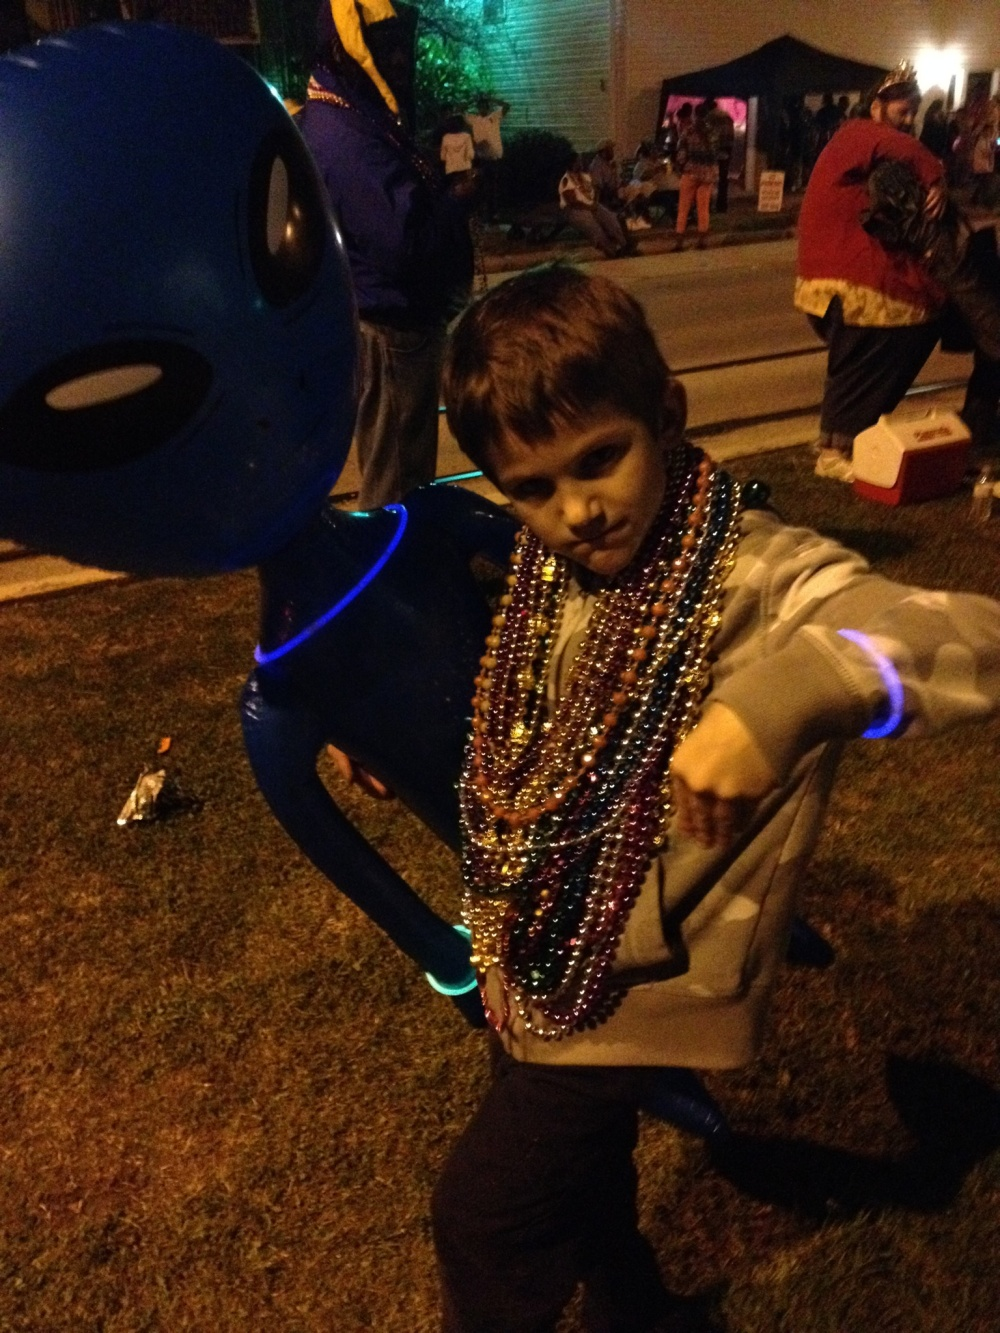 Alien enjoying Mardi Gras